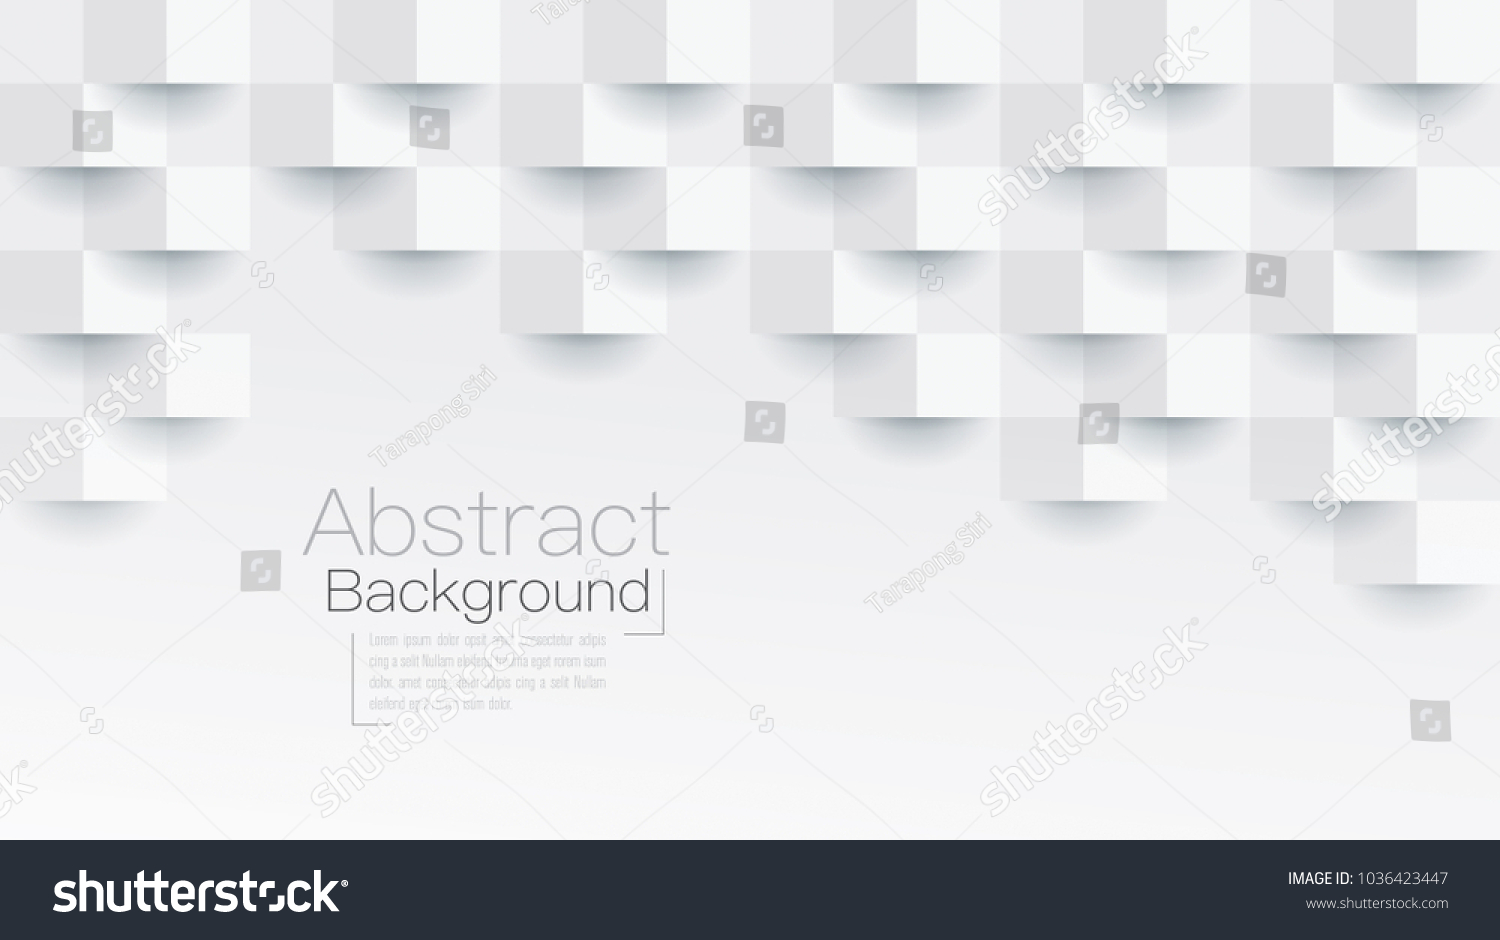 White abstract texture. Vector background 3d paper art style can be used in cover design, book design, poster, flyer, cd cover, website backgrounds or advertising. #1036423447